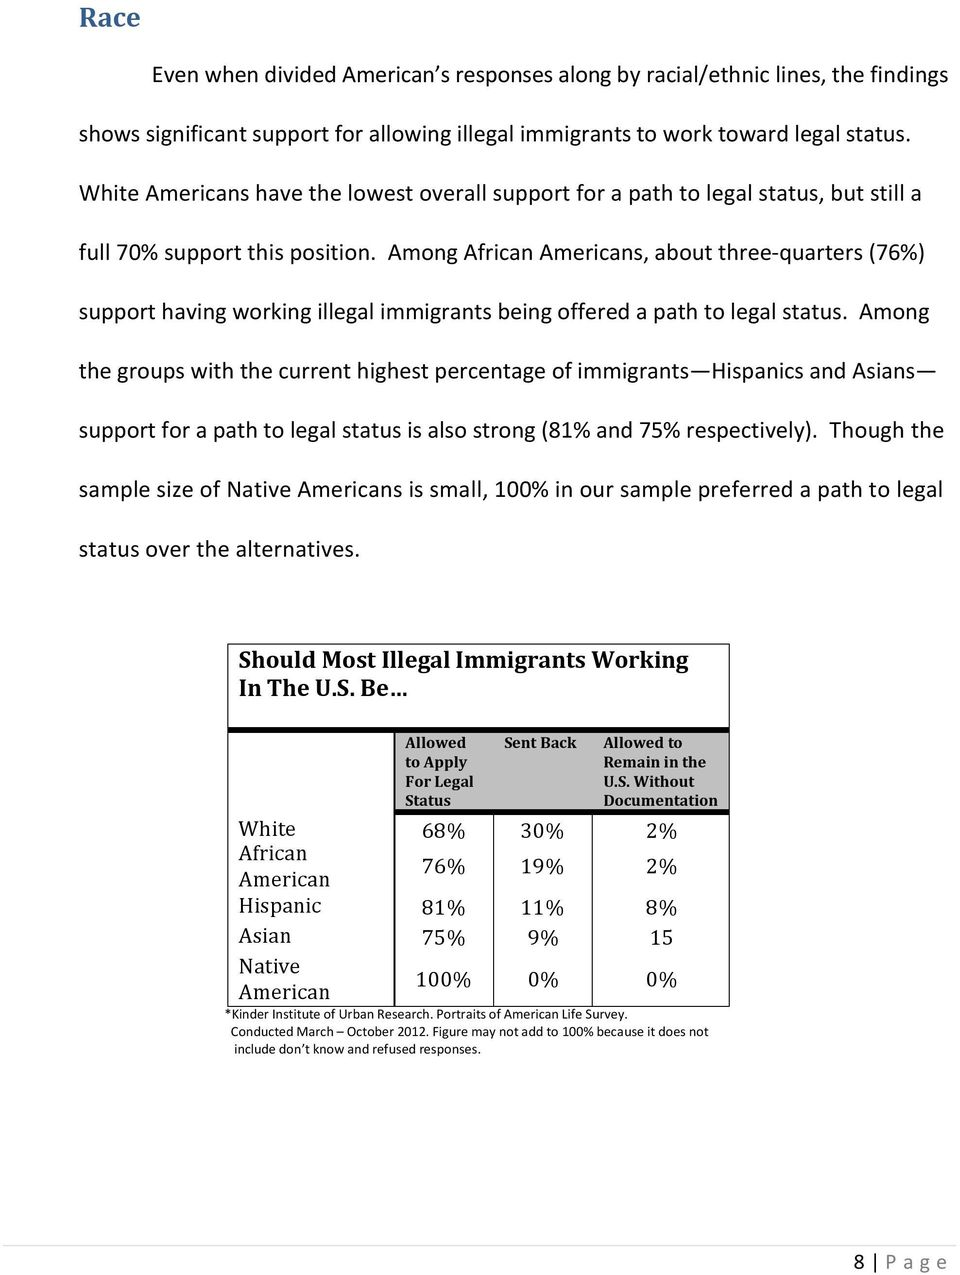 Among African Americans, about three- quarters (76%) support having working illegal immigrants being offered a path to legal status.